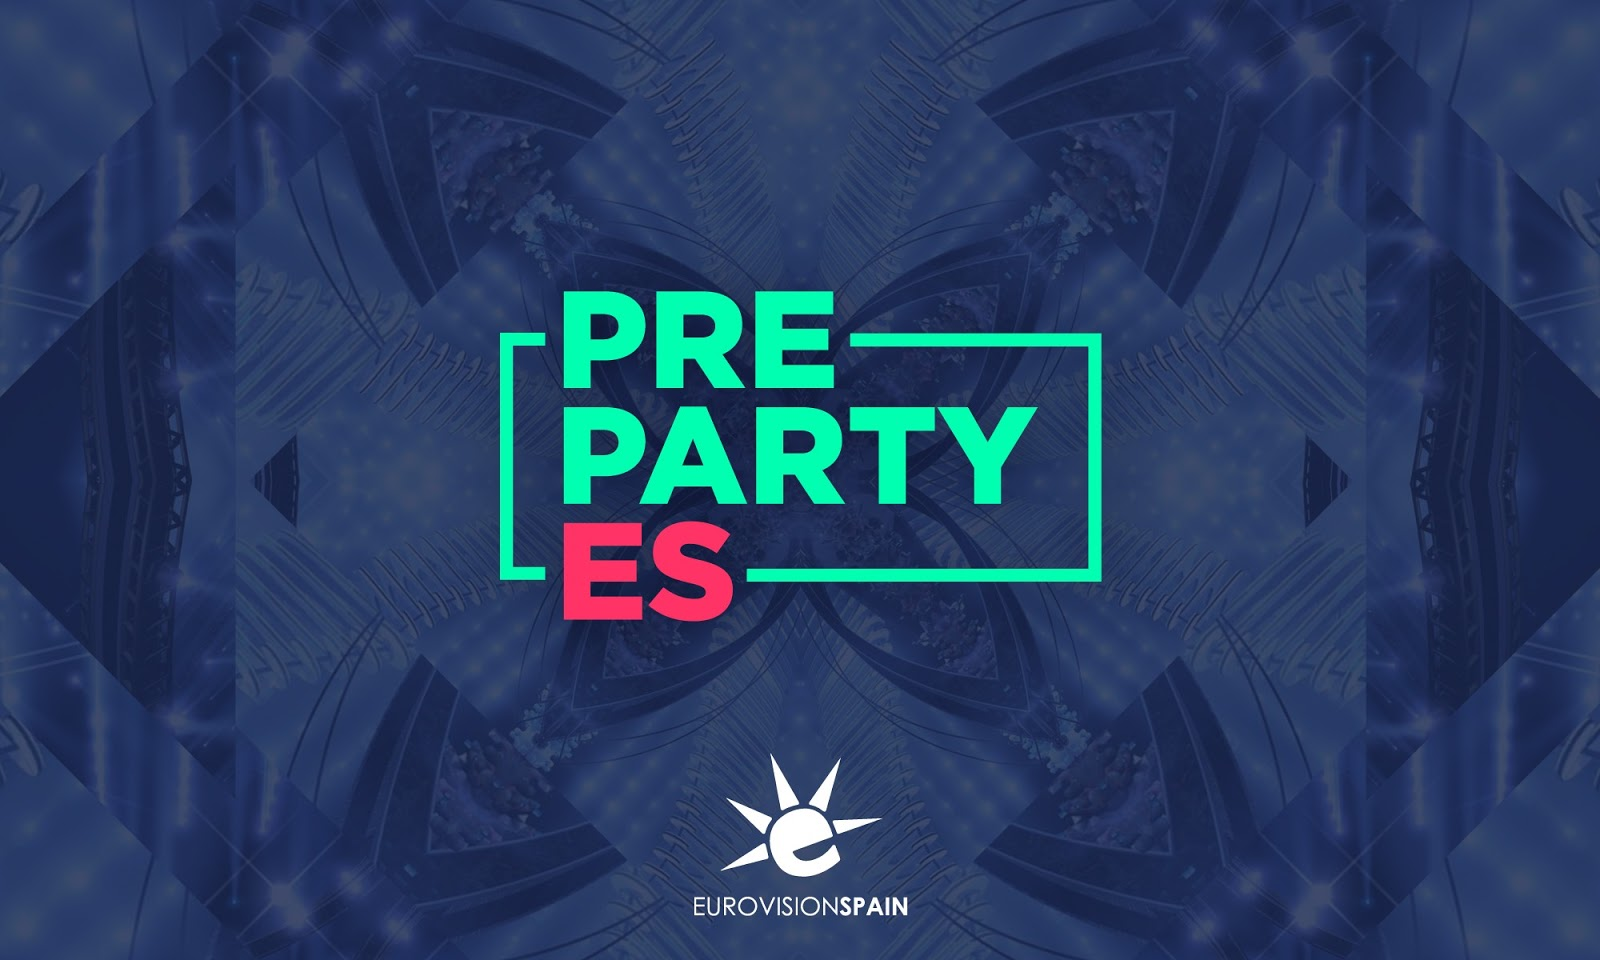 REVIVE LA PREPARTY ES 2019